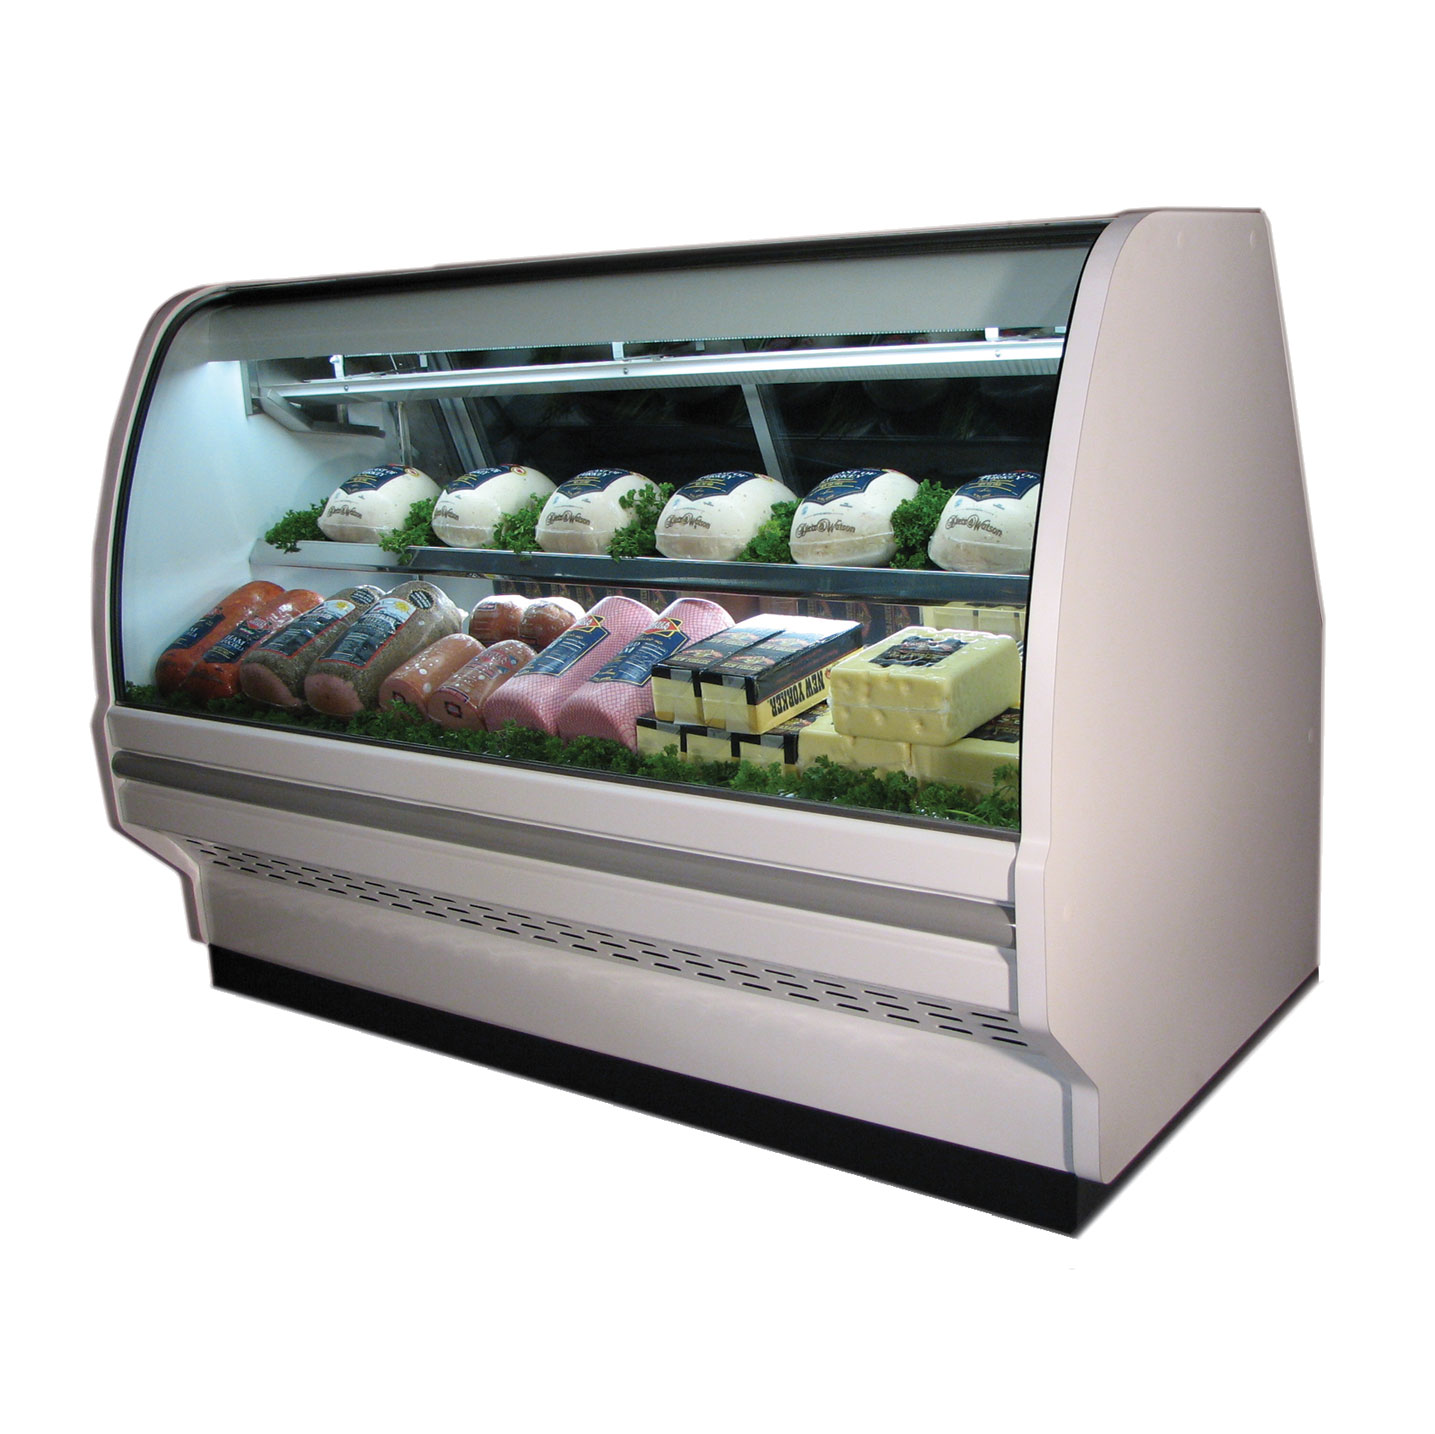 Howard-McCray R-CDS40E-4C-BE-LED display case, refrigerated deli